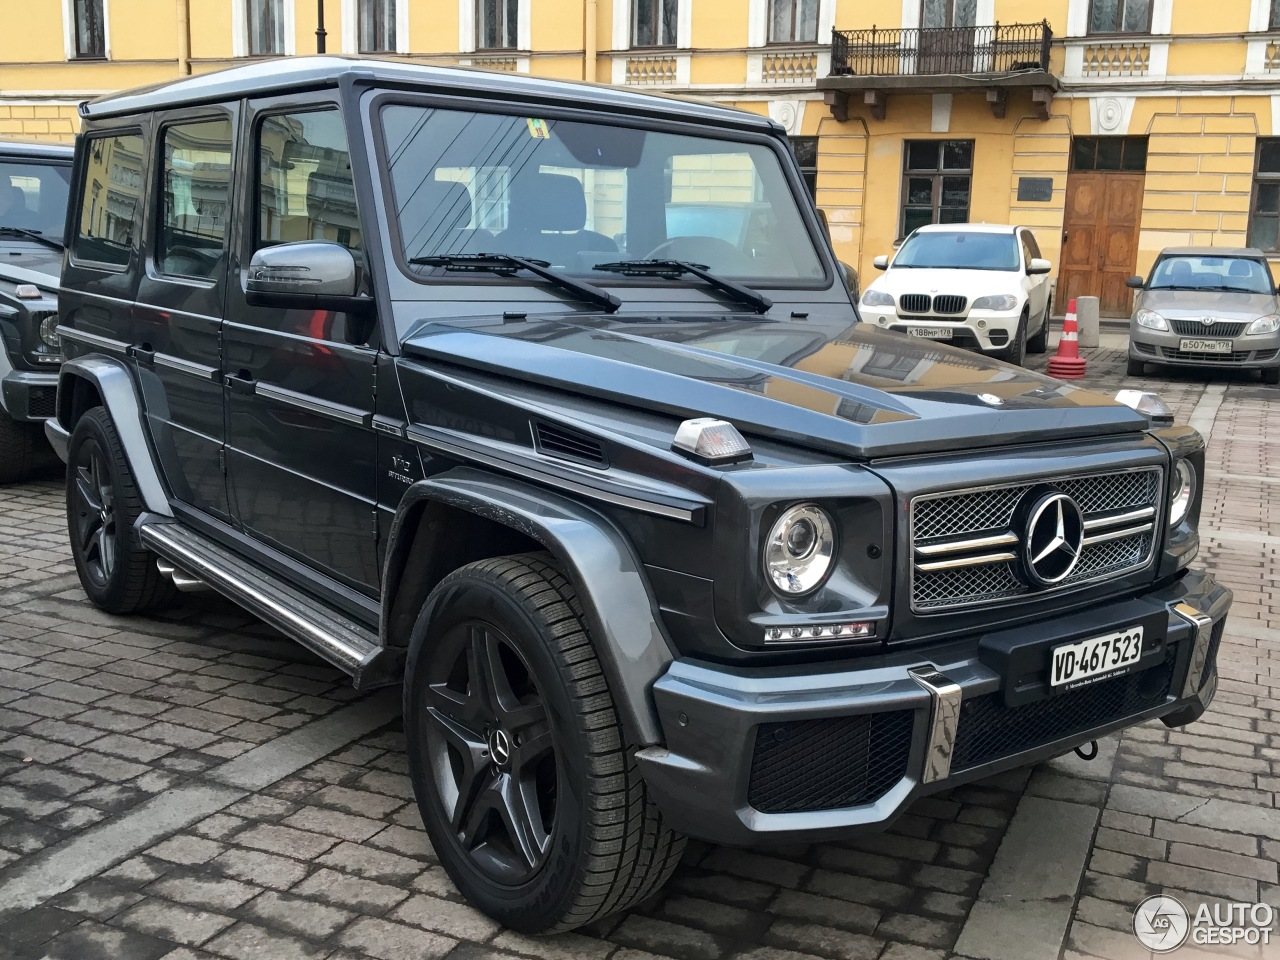 Mercedes benz g 65 amg 15 august 2016 autogespot for Mercedes benz amg 65 price